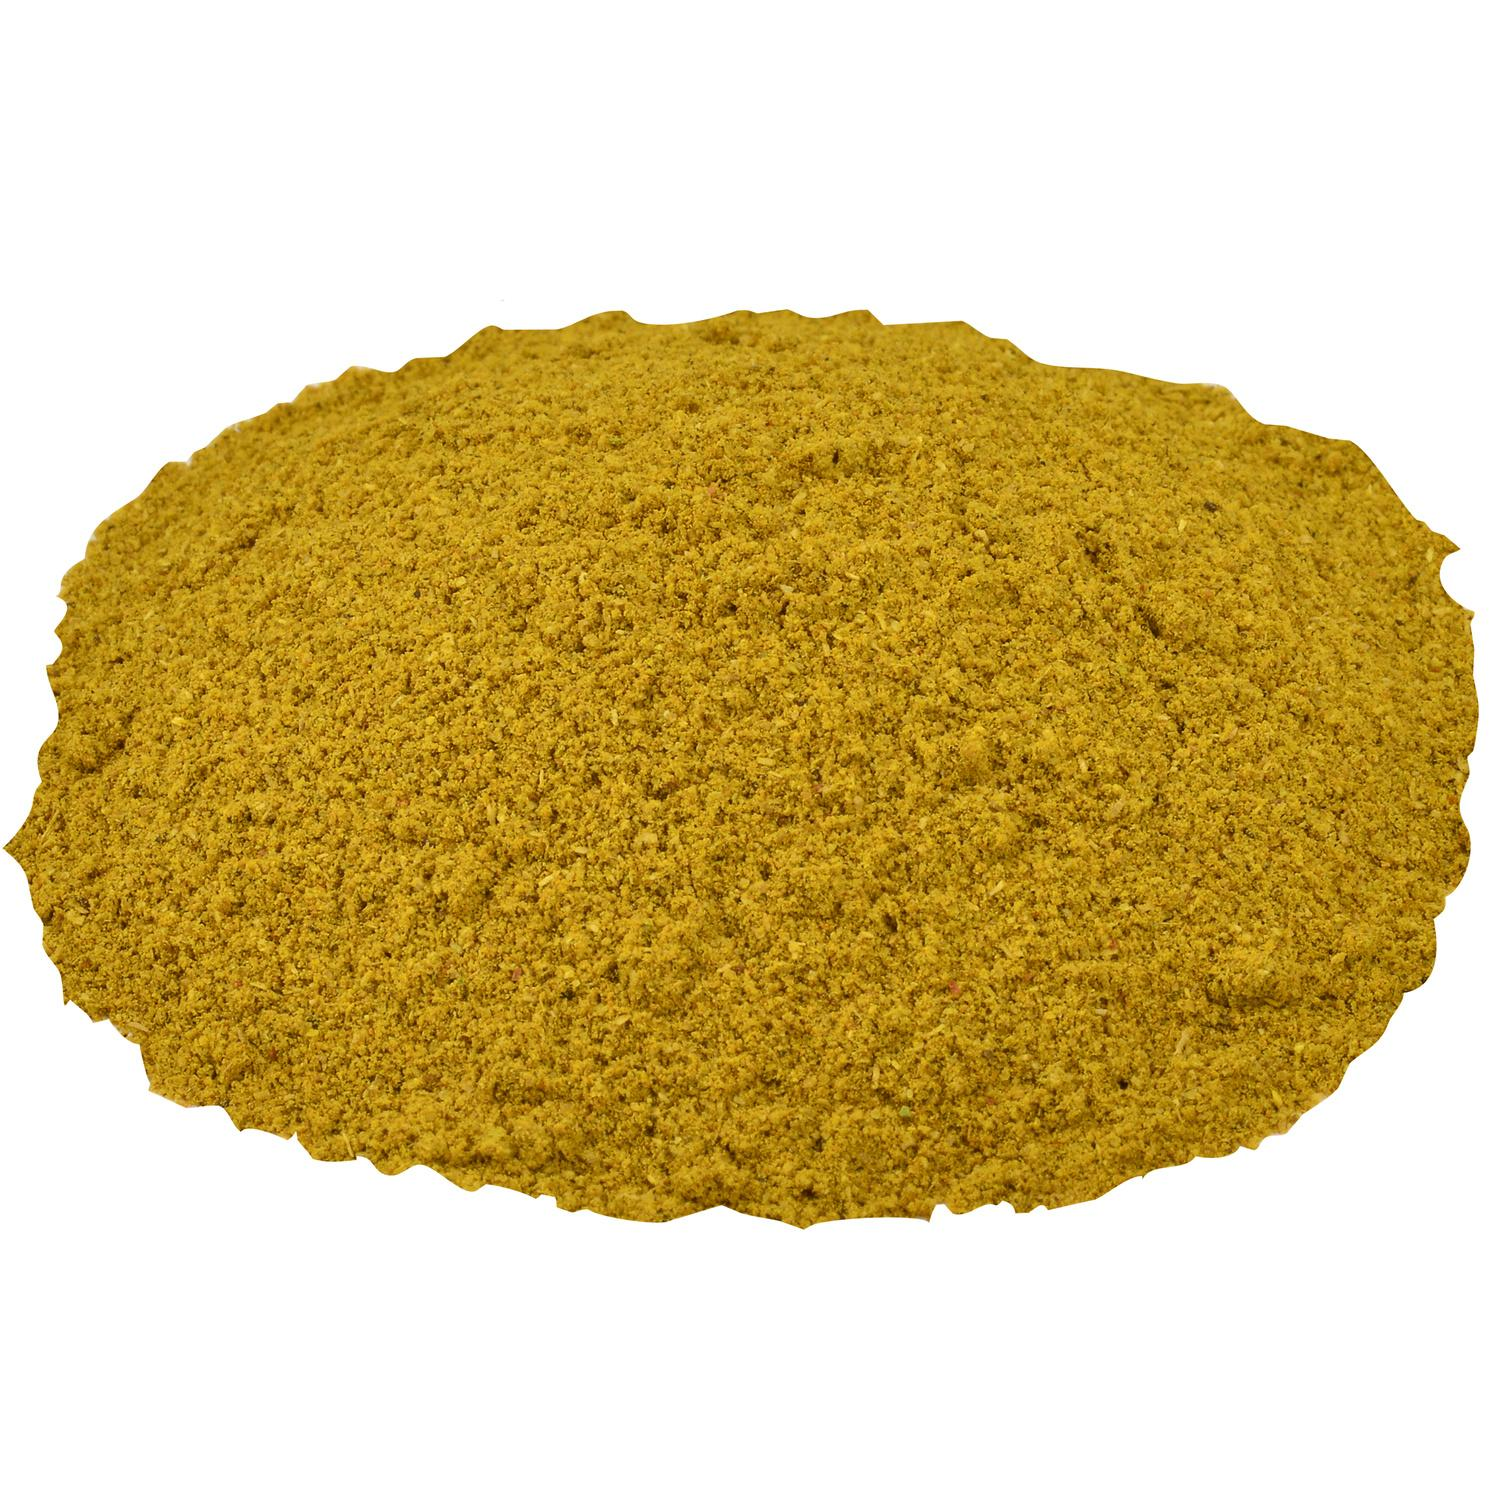 image of Imperial McCormick Curry Powder